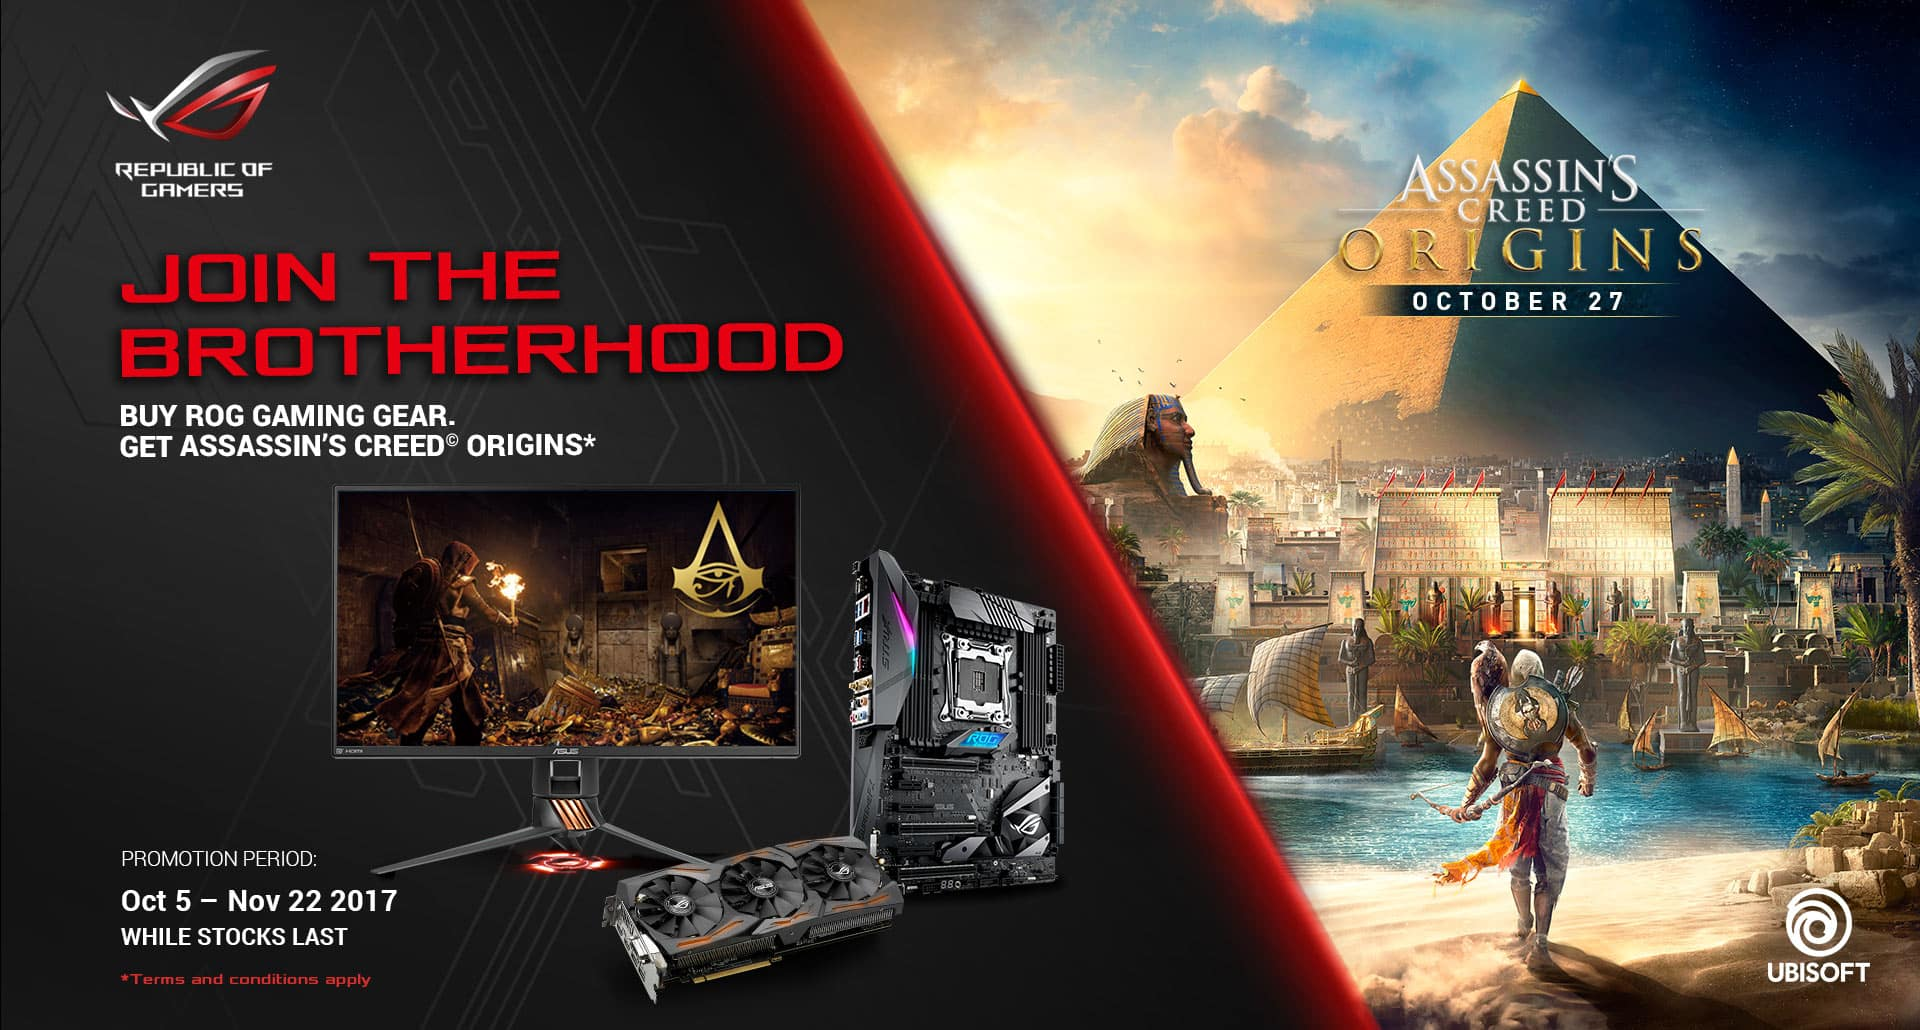 Assassin's Creed Origin free with ROG gear purchase